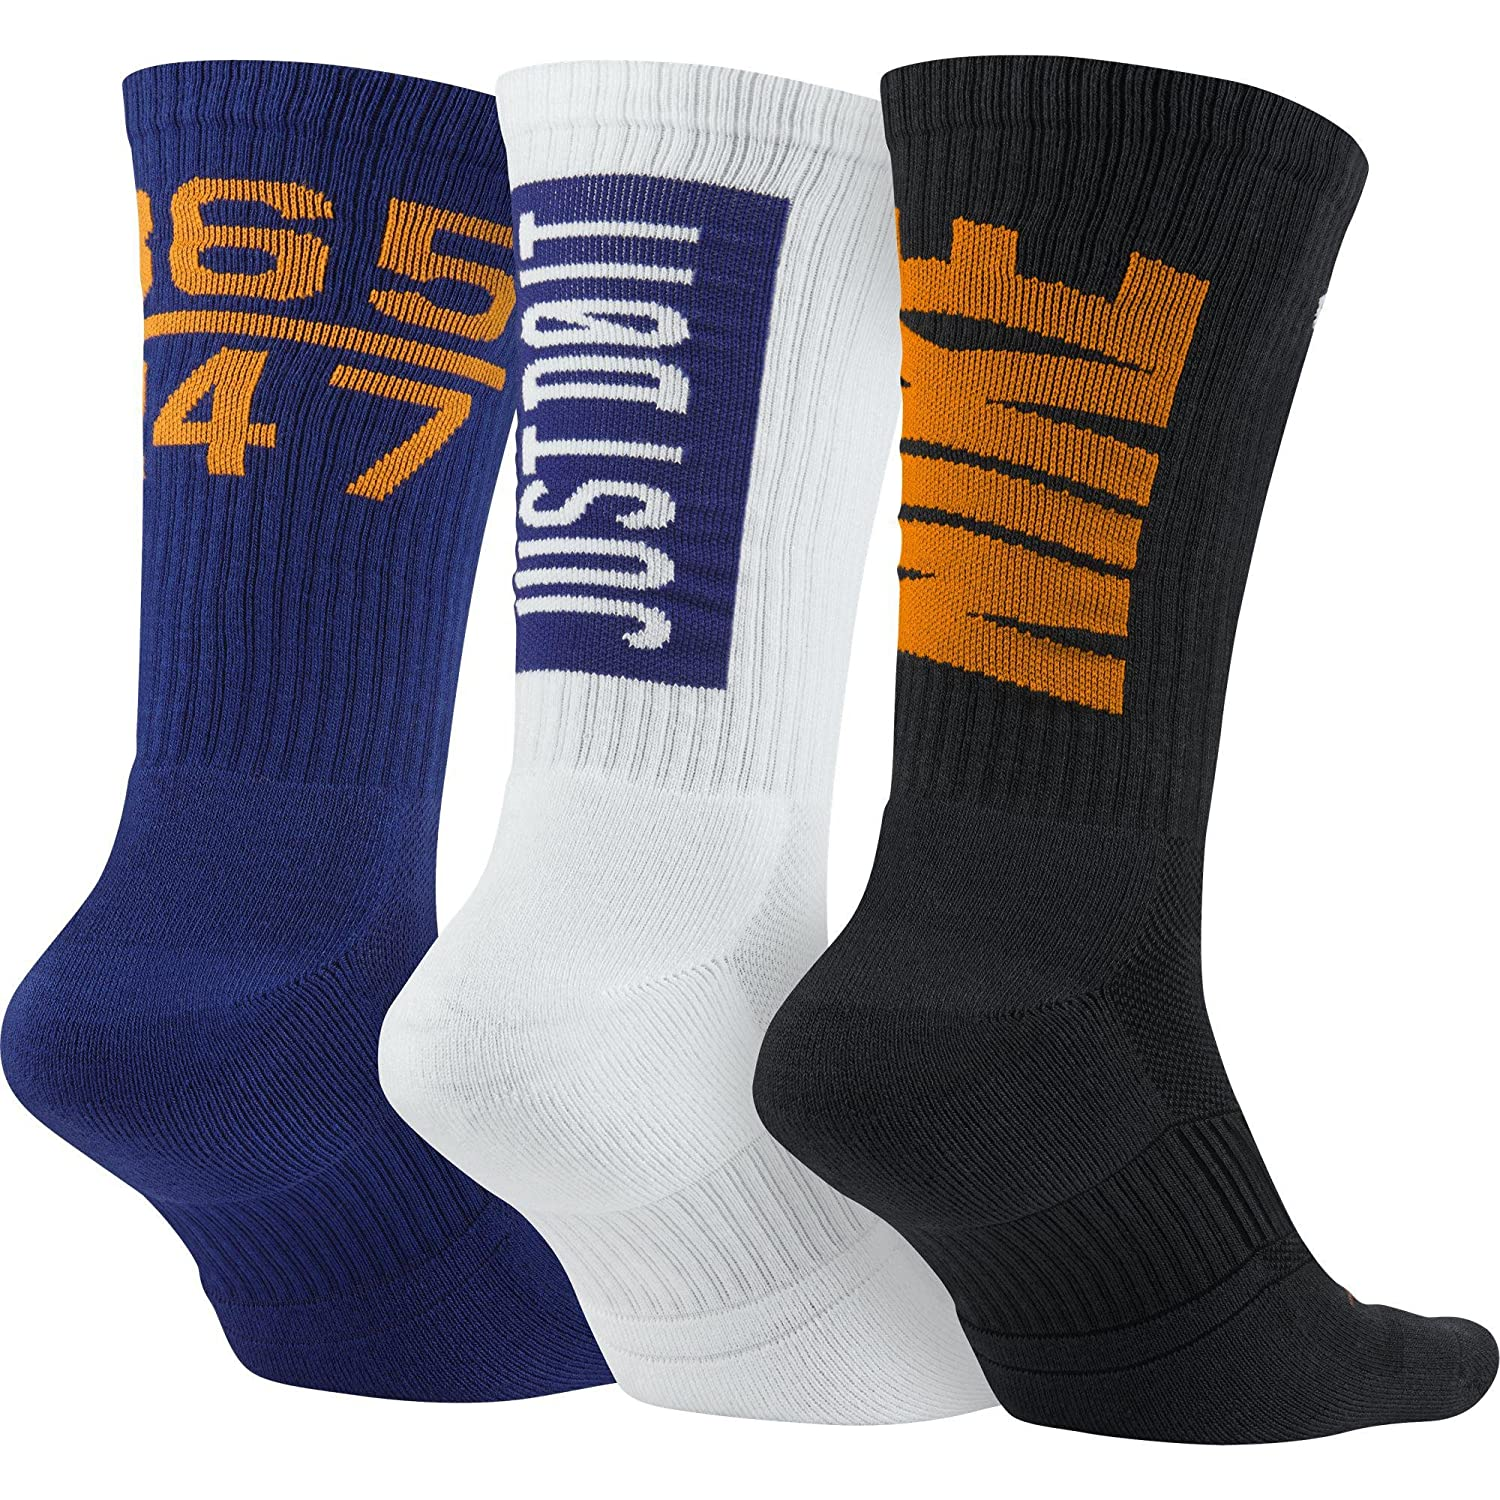 Amazon.com: Empaque de 3 calcetines Nike Dri Fit Fly Rise ...